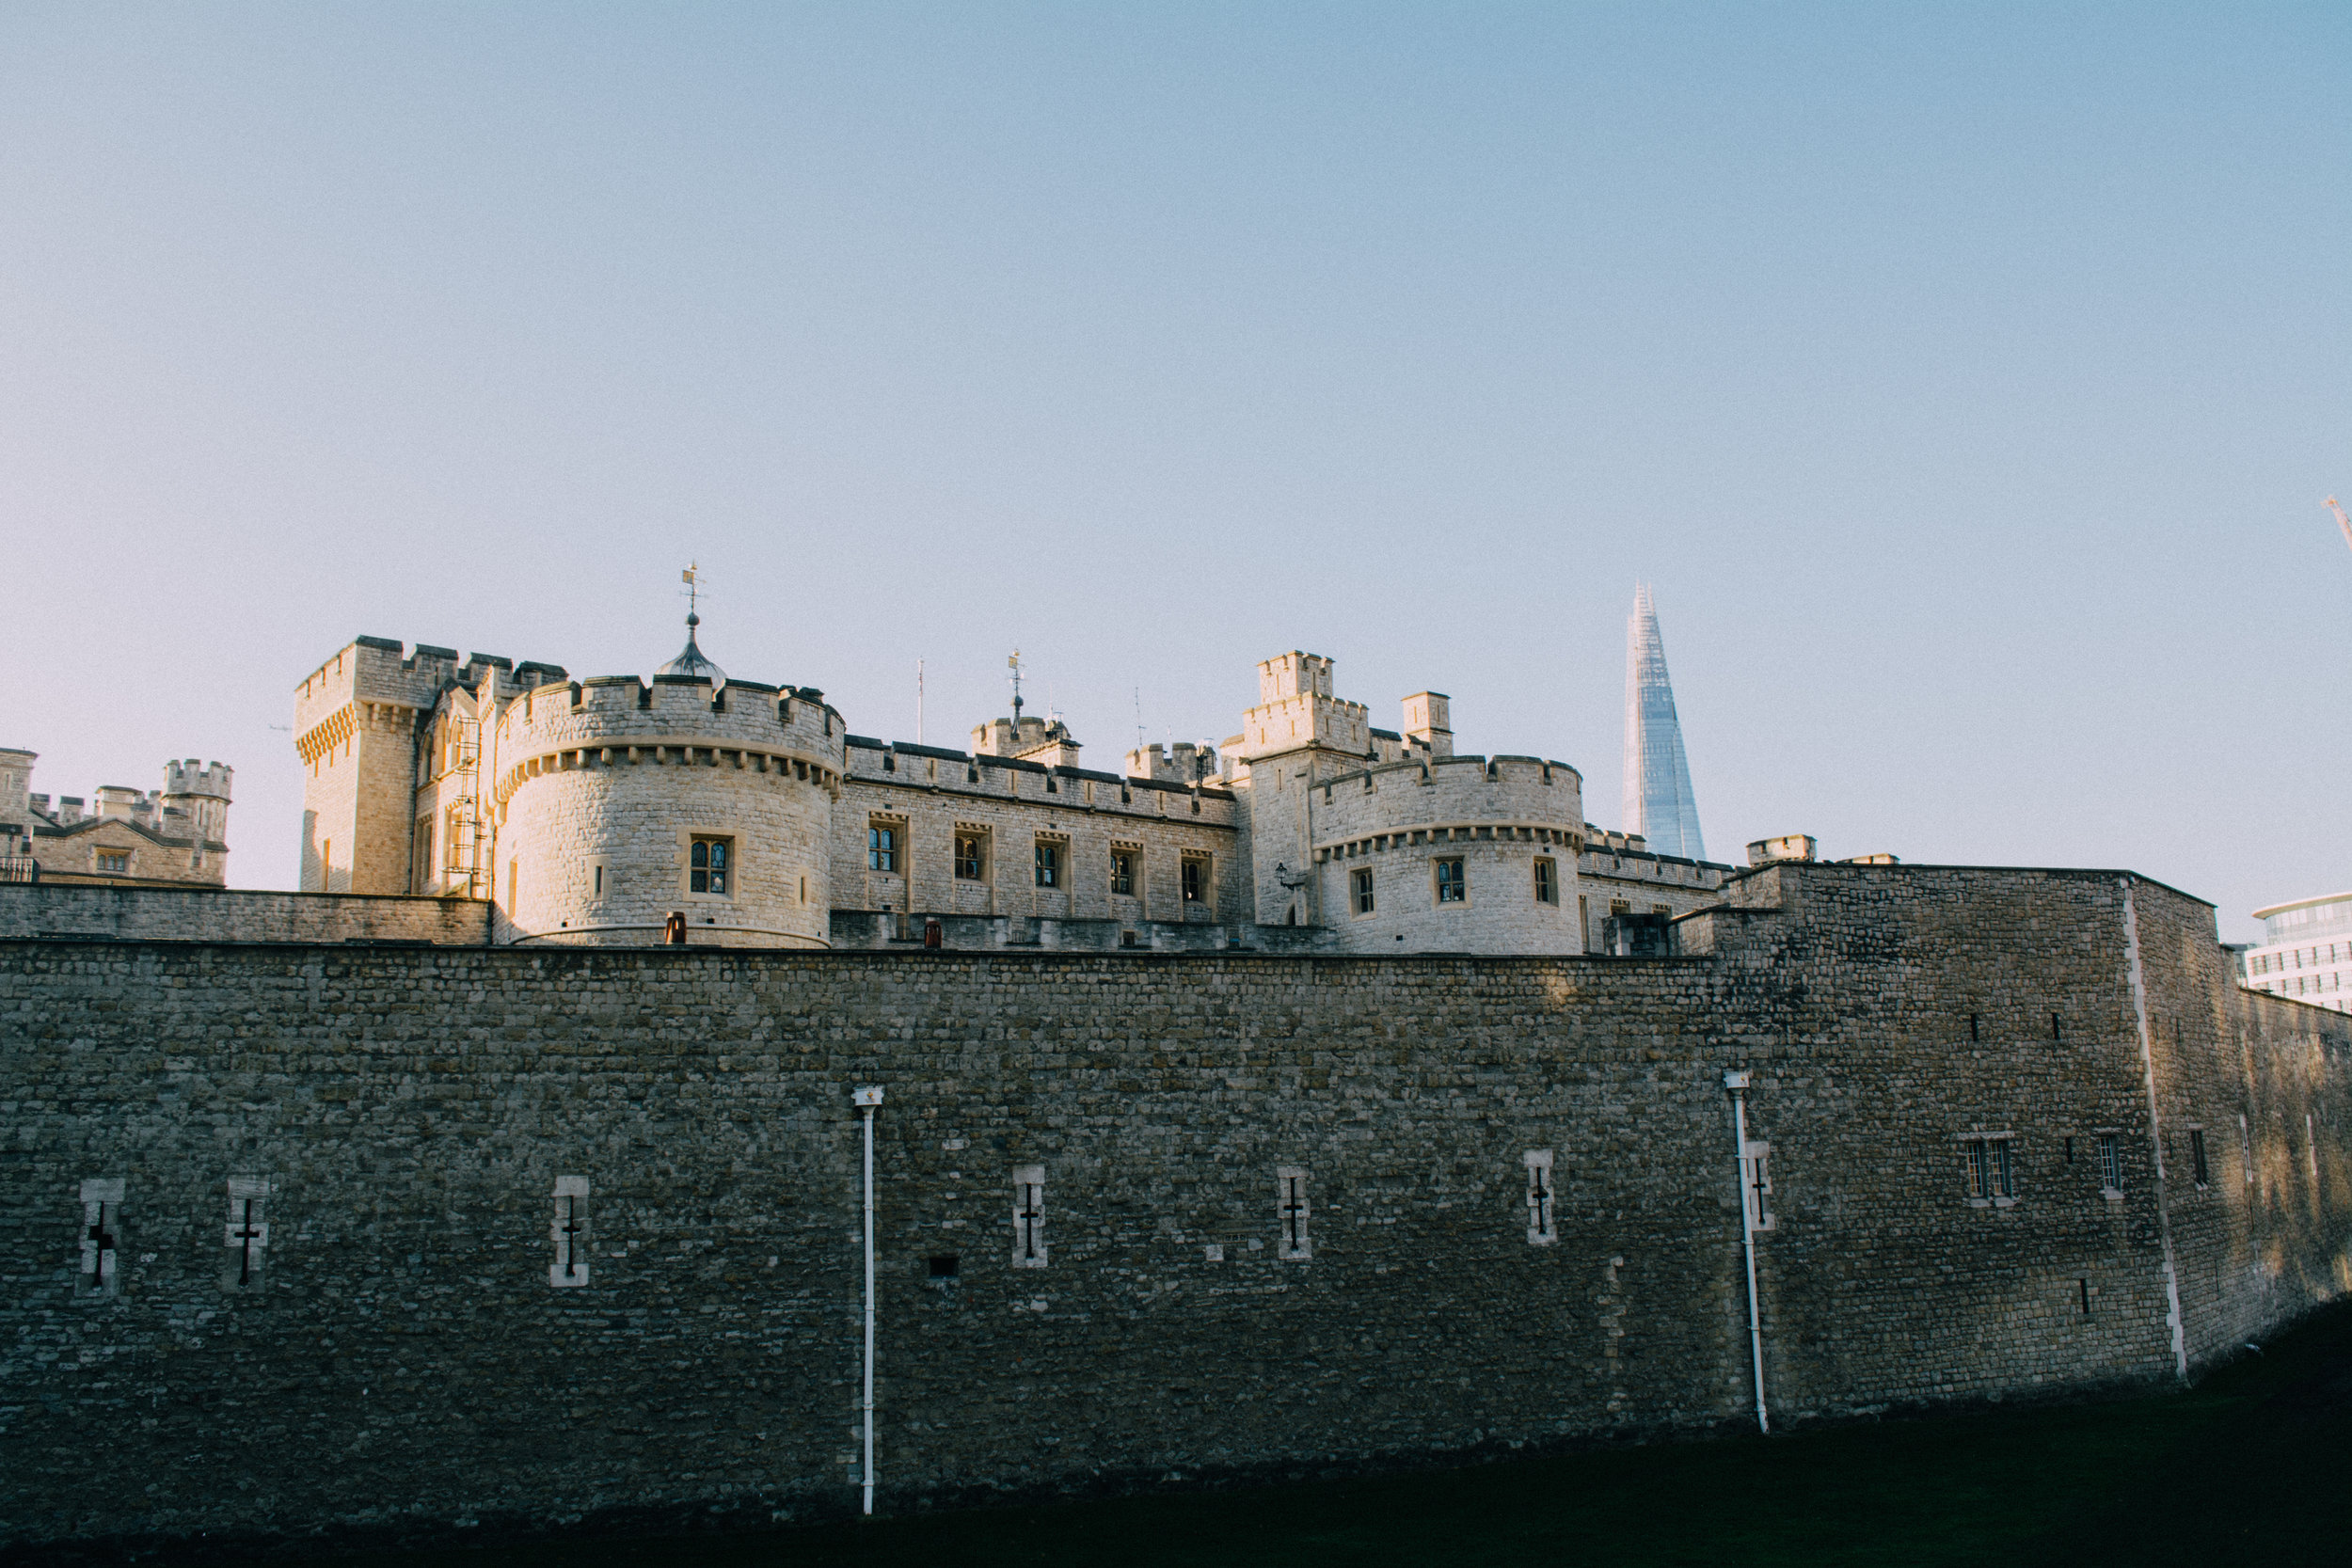 The Tower of London. Pinch me.